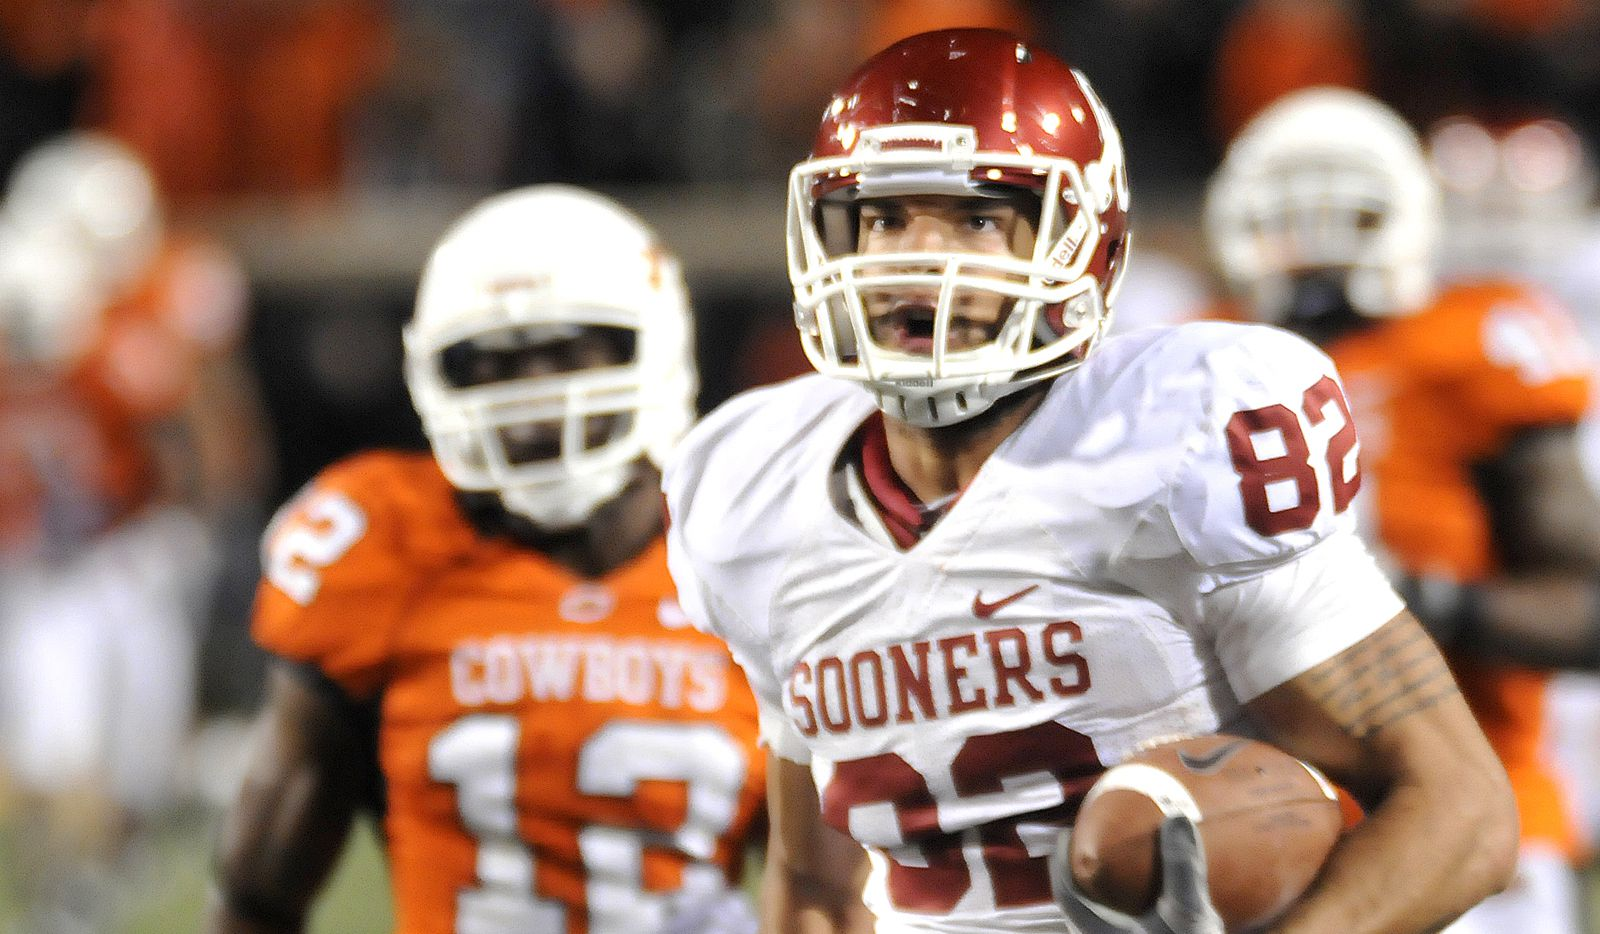 FILE - In this Nov. 27, 2010, file photo, Oklahoma's James Hanna outruns the Oklahoma State defense for a touchdown late in the fourth quarter of an NCAA college football game in Stillwater, Okla. The Cowboys trailed 40-38 when Oklahoma got the ball back late in the game. Instead of getting a stop, Oklahoma State gave up Landry Jones' 76-yard touchdown pass to Hanna that put the game away. (AP/Enid News & Eagle, Billy Hefton, File) 12032011xBRIEFING